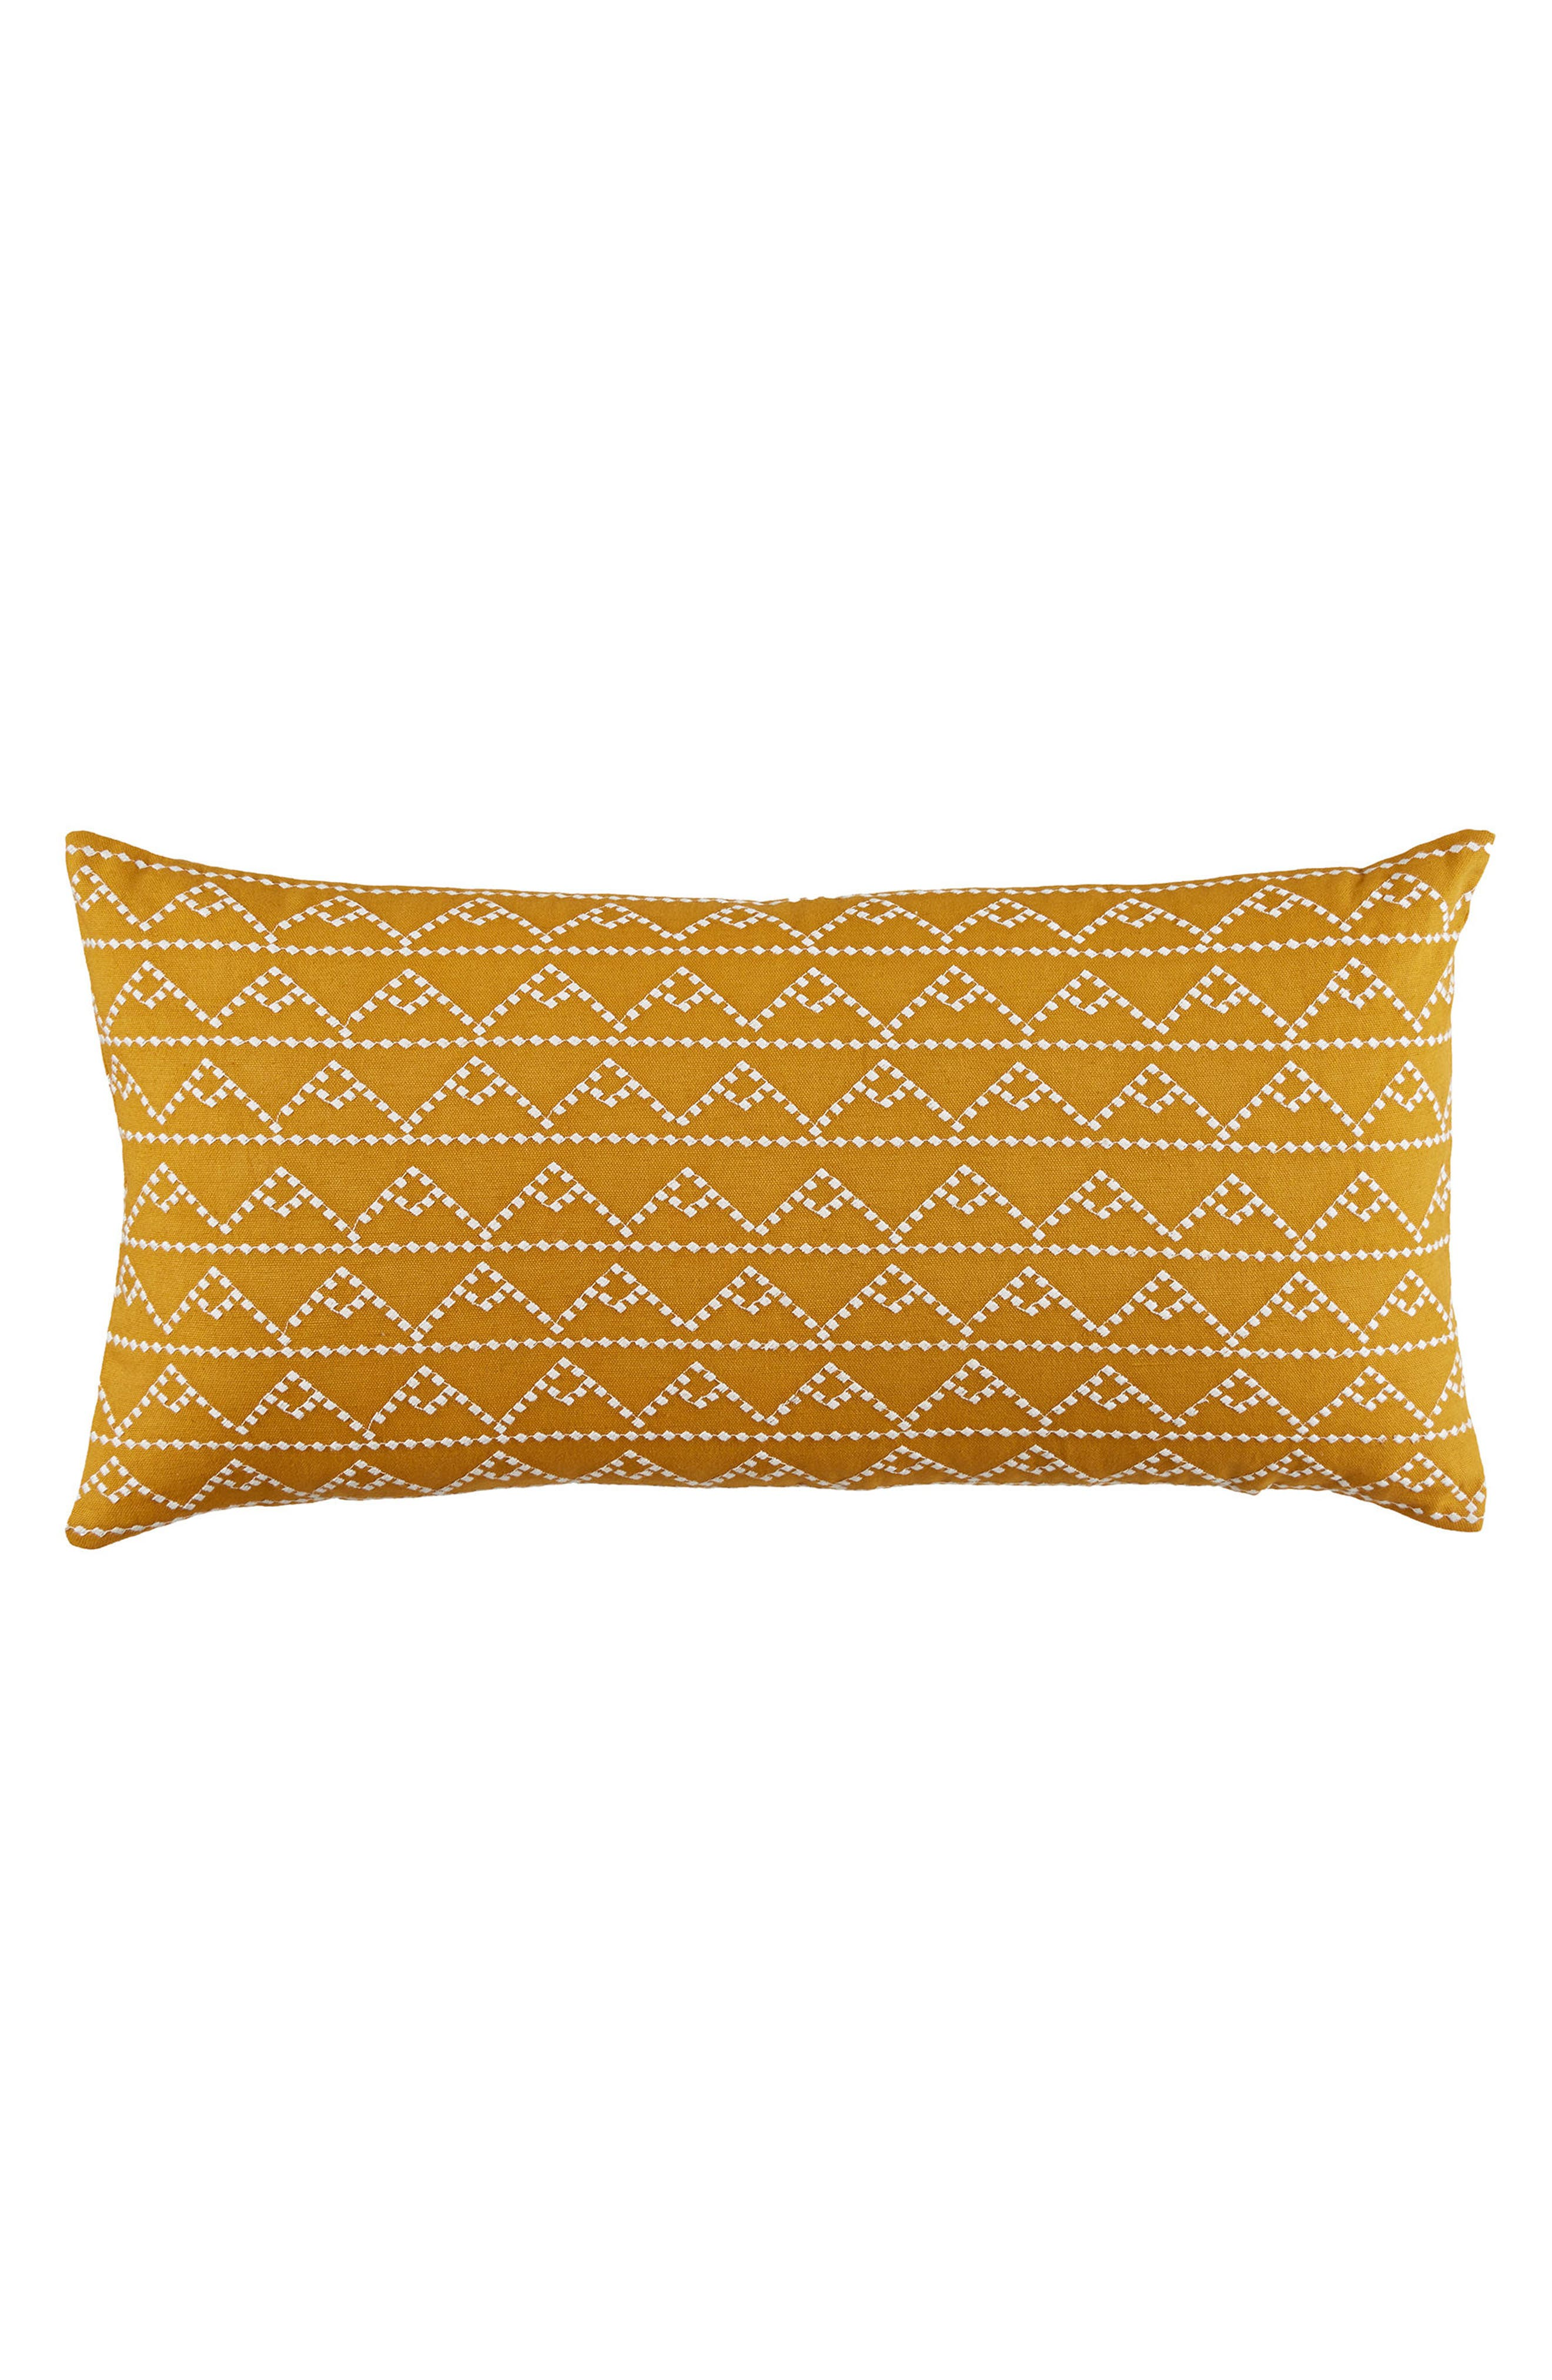 Modern Pyramid Accent Pillow,                         Main,                         color, Gold